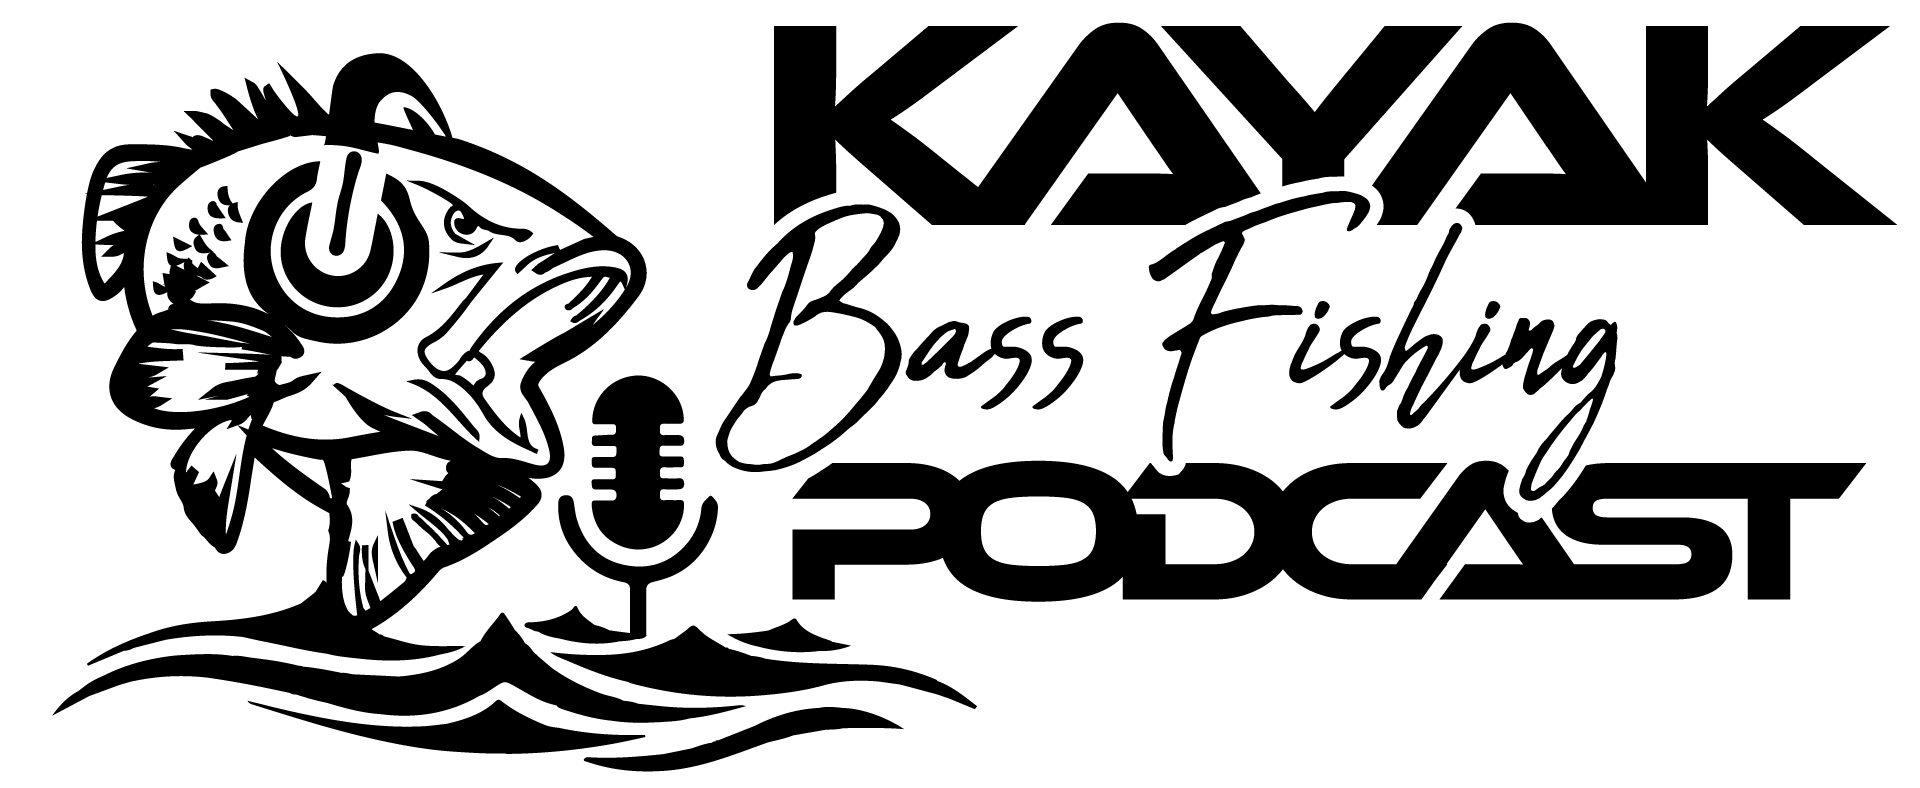 The Kayak Bass Fishing Podcast